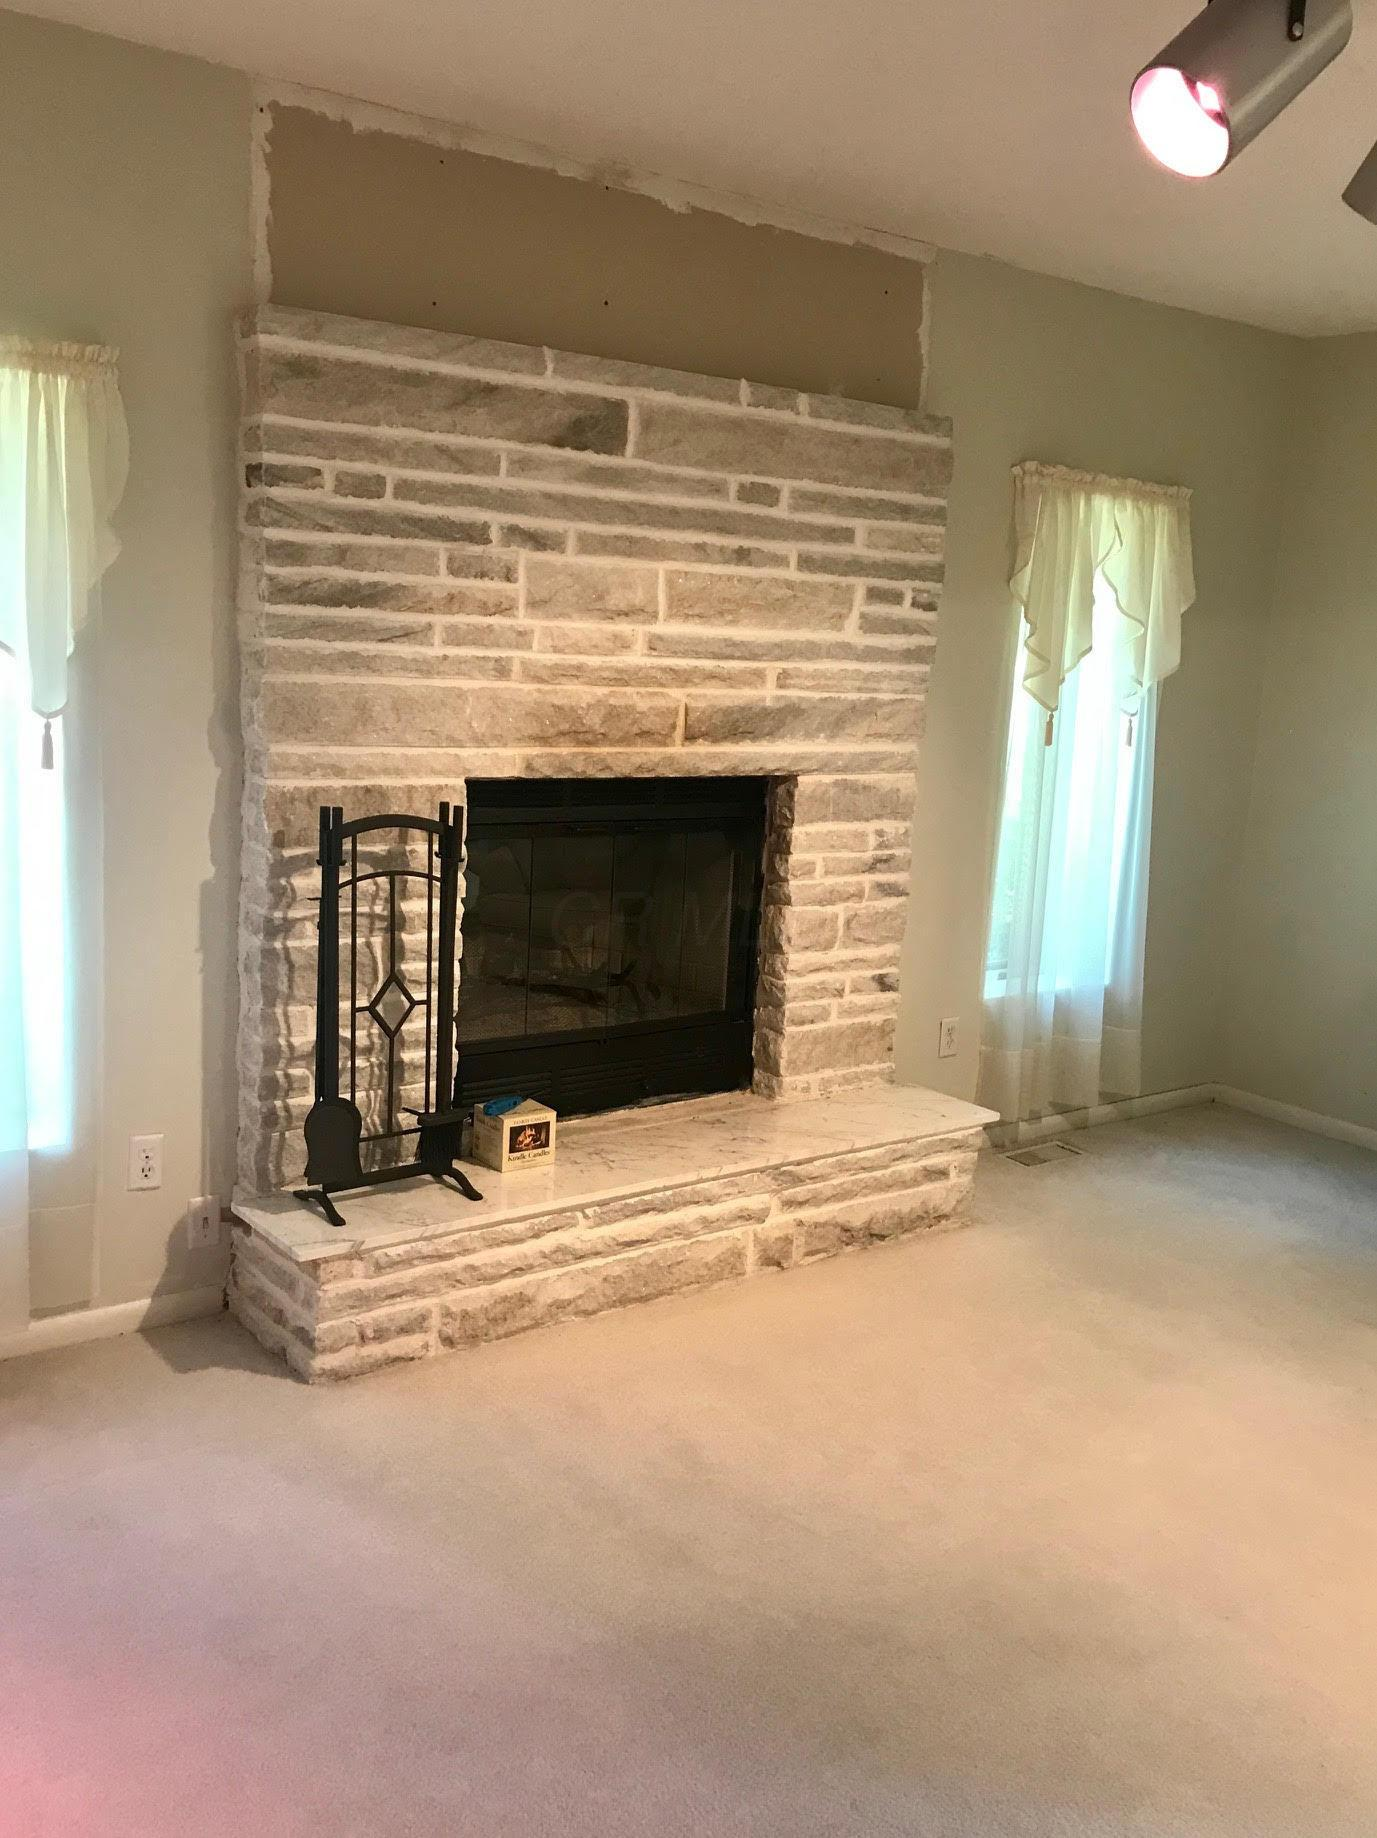 9000 State Route 37, Sunbury, Ohio 43074, 3 Bedrooms Bedrooms, ,3 BathroomsBathrooms,Residential,For Sale,State Route 37,220018438